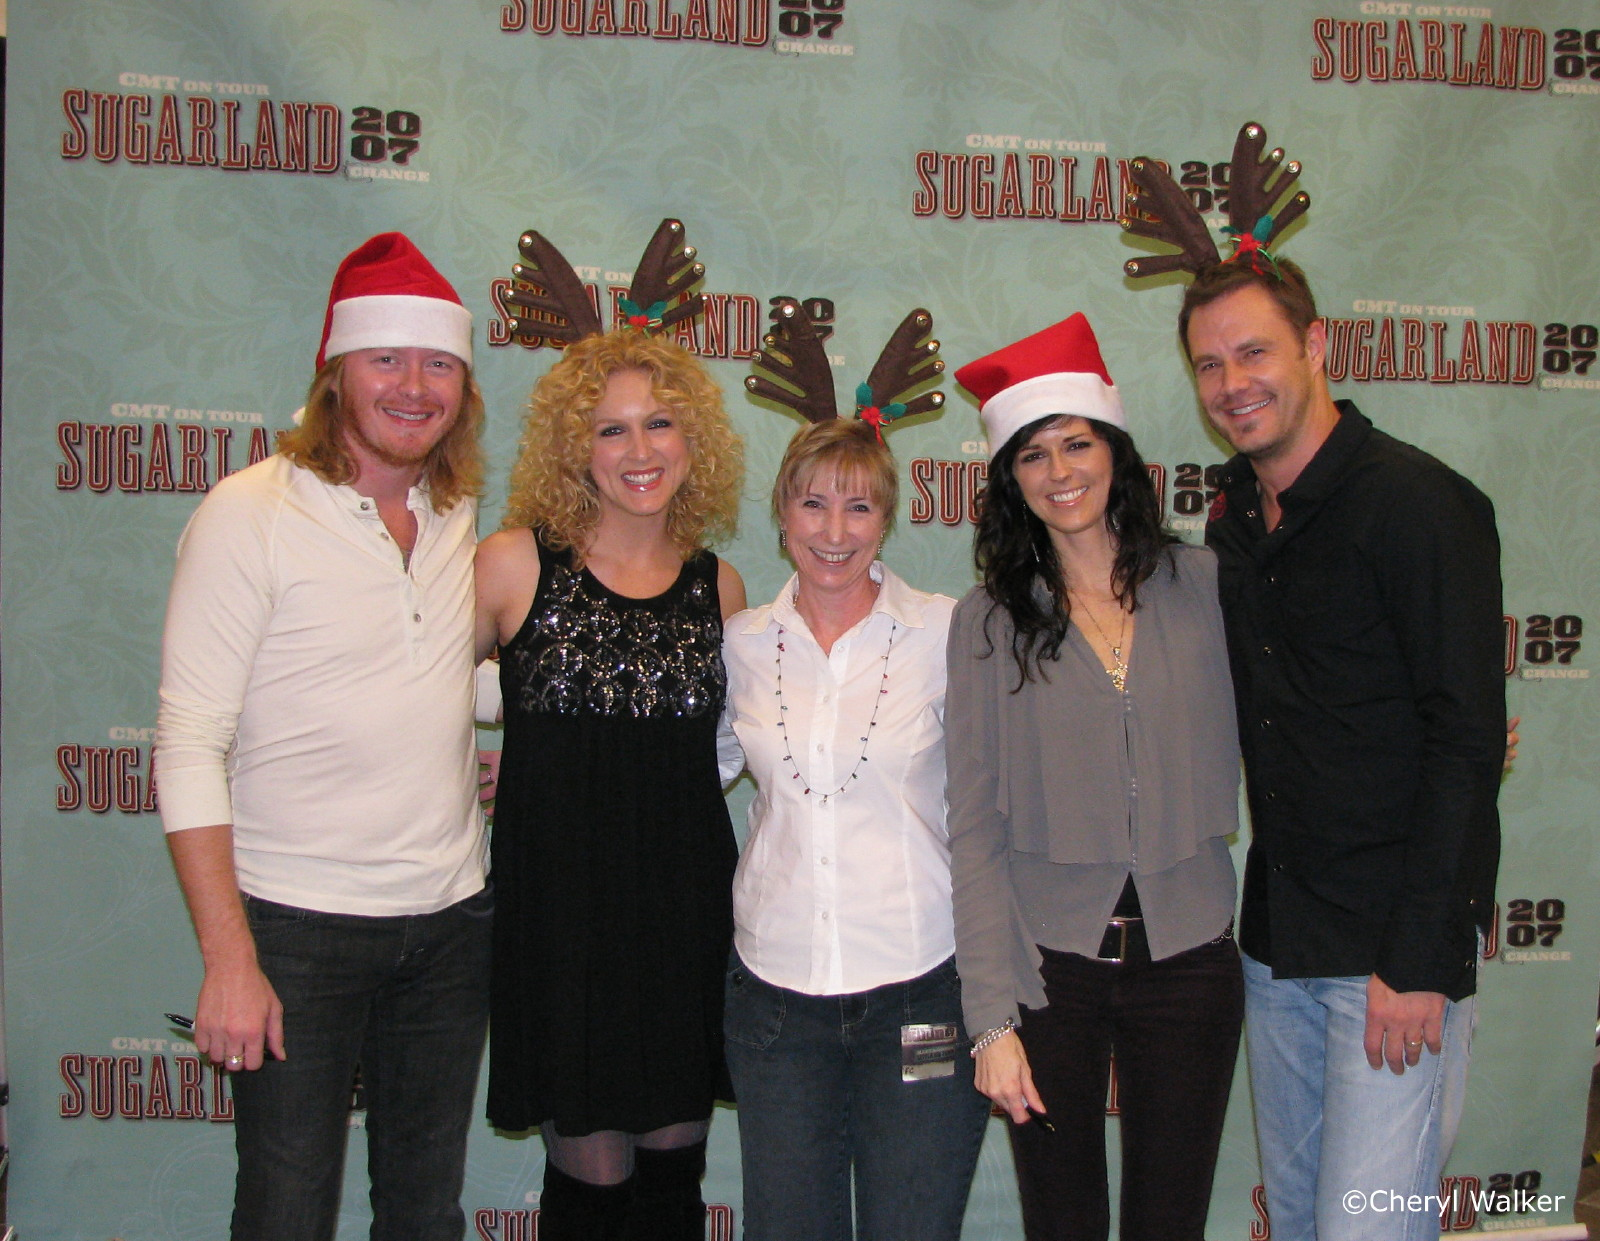 Cheryls pearls pics n ponderings sugarland little big town and his road manager tried to sneak one of the antlers away from me but i needed it for little big towns meet and greet which was next m4hsunfo